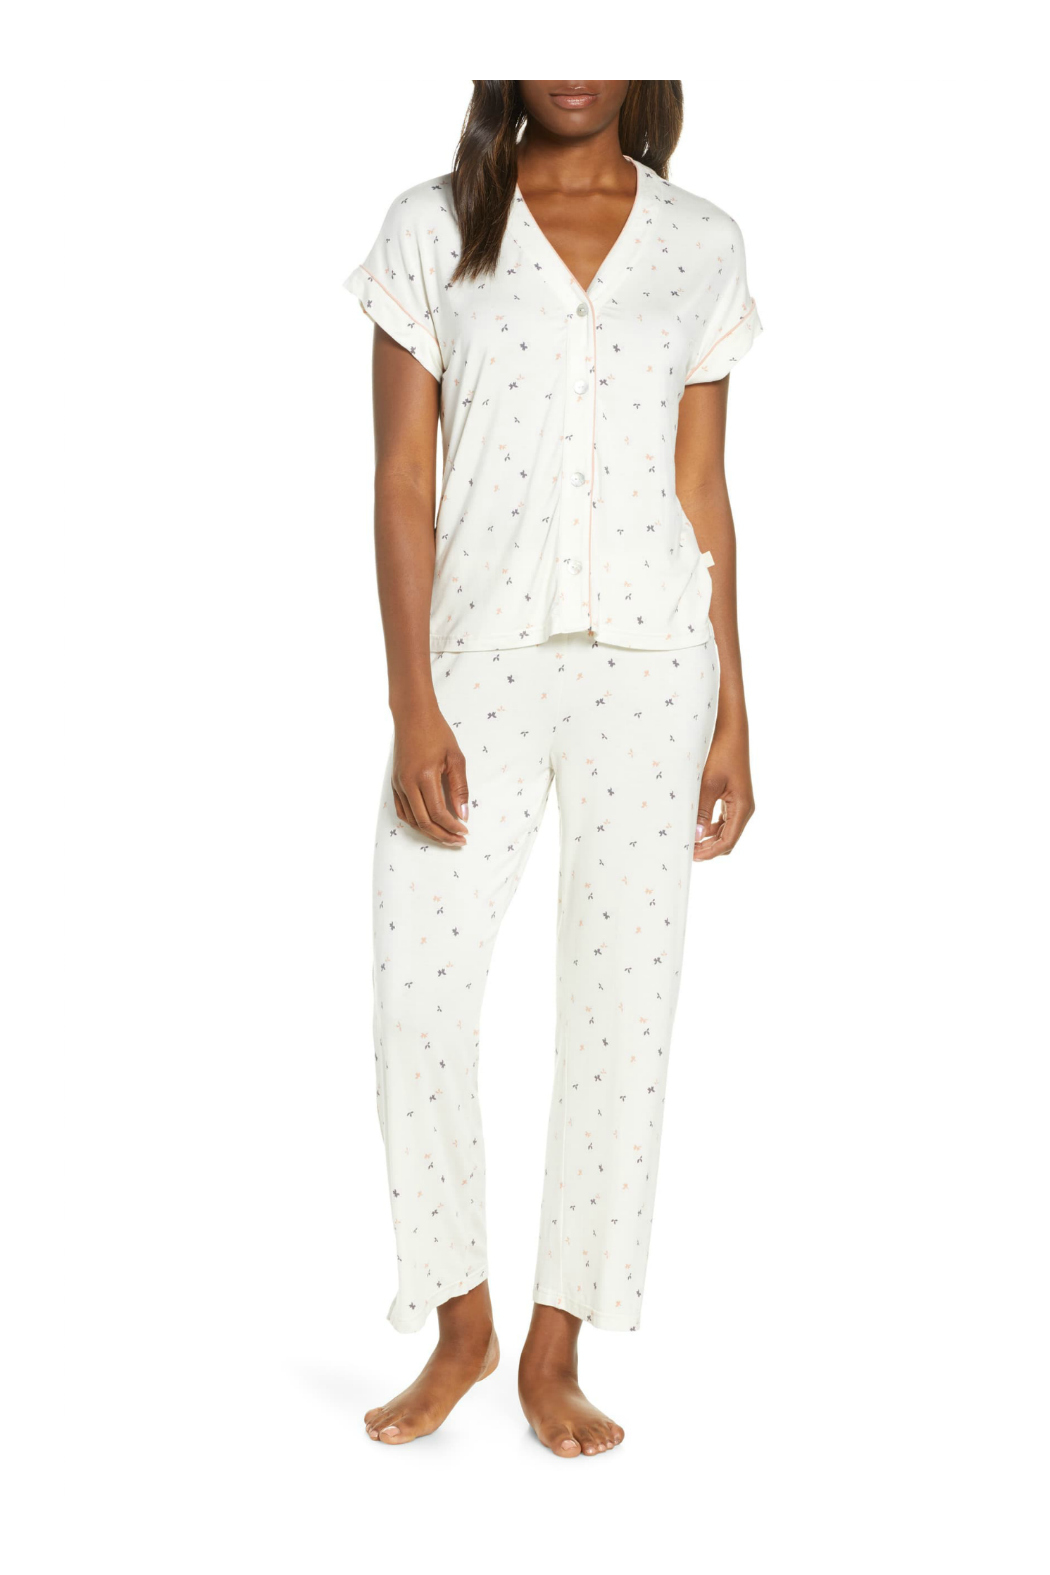 Ugg ADDI SLEEPWEAR SET - Main Image